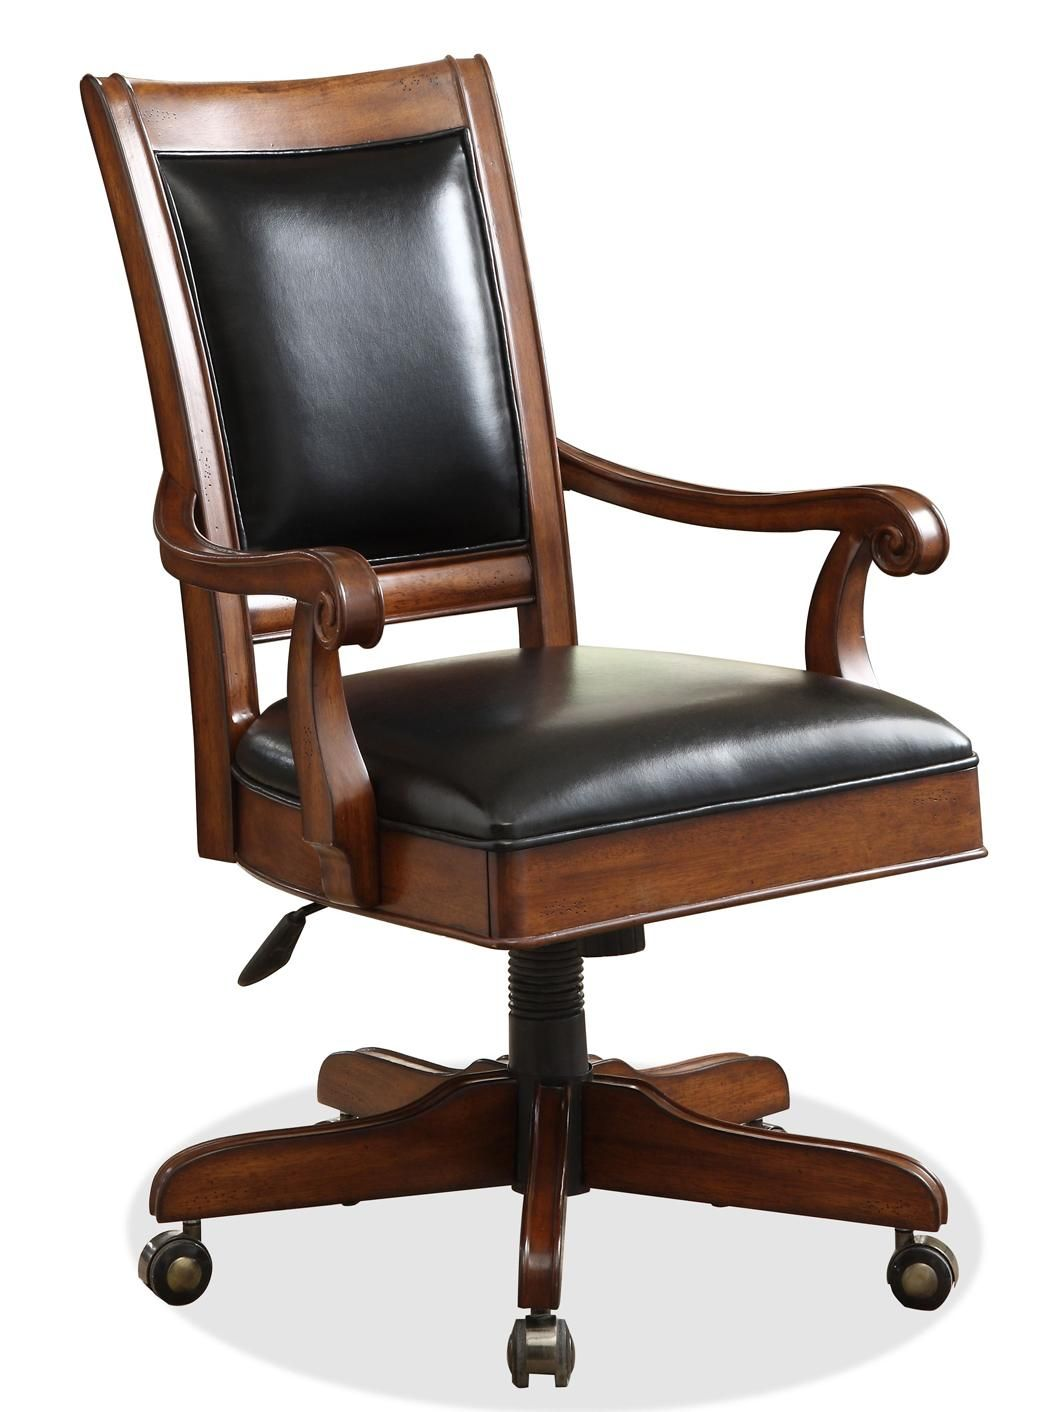 Wood And Leather Desk Chair Stuhlede Com Wood Desk Chair Riverside Furniture Wood Office Chair